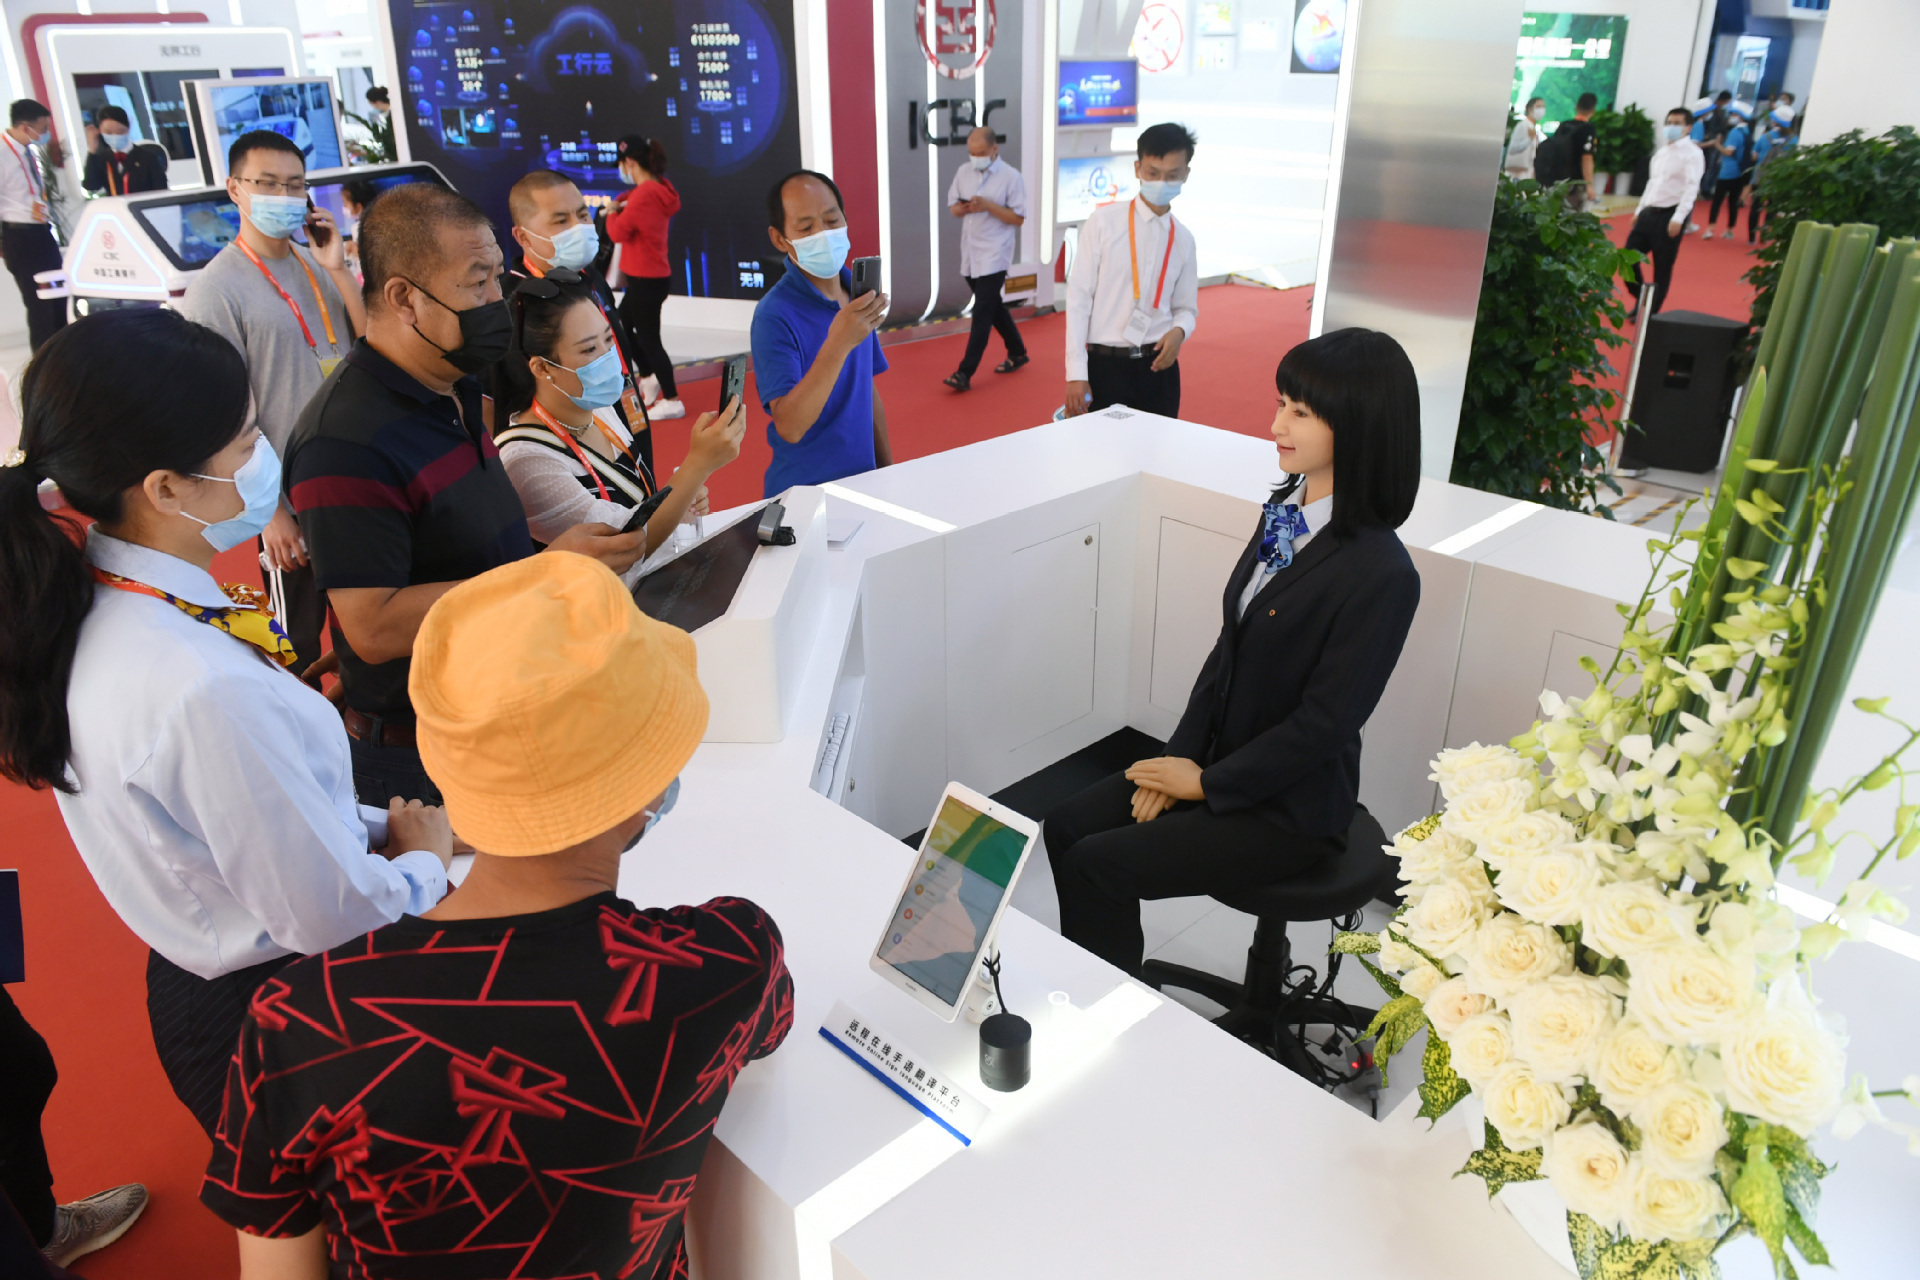 Beijing gets green light for services sector plan